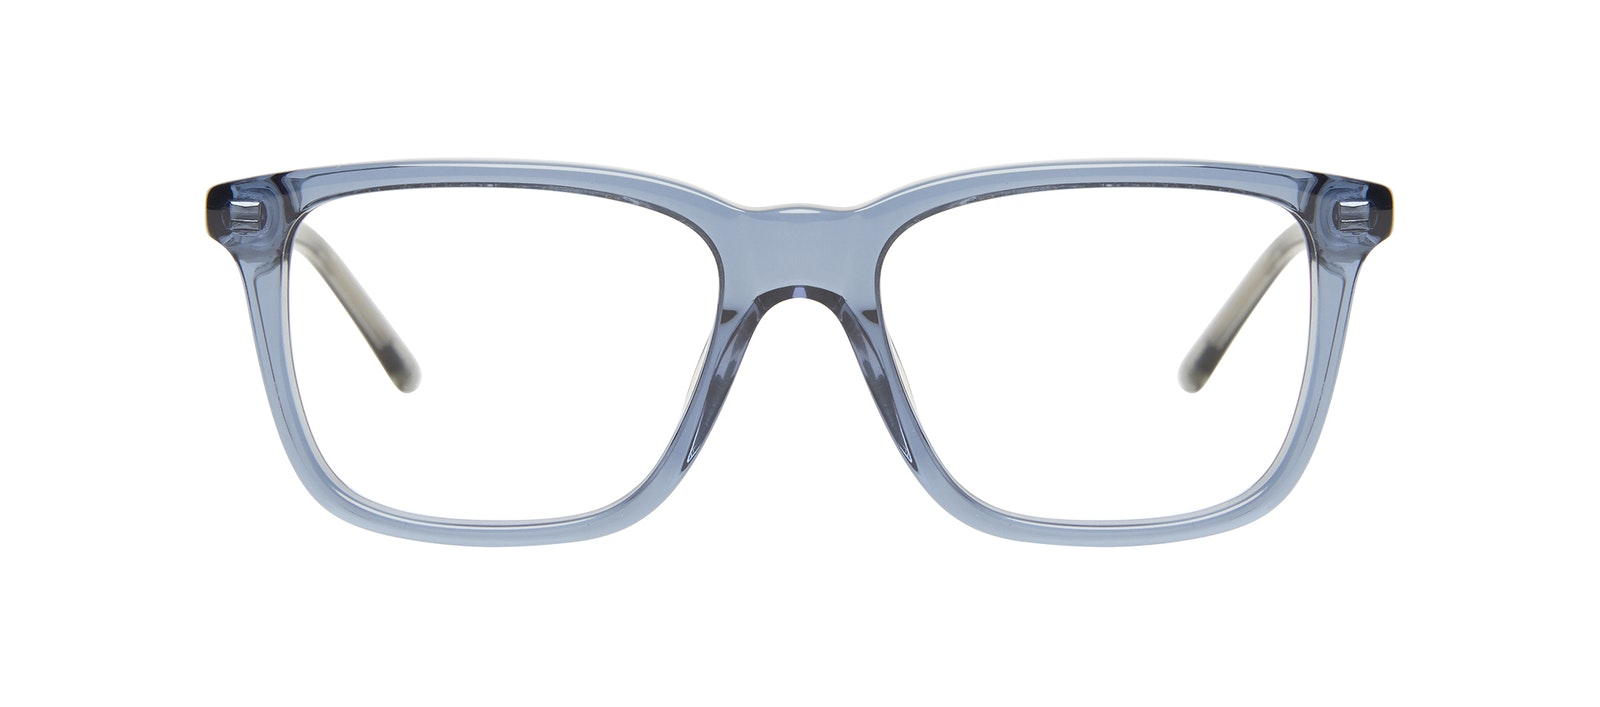 Affordable Fashion Glasses Square Eyeglasses Kids Code Junior Oxford Grey Front